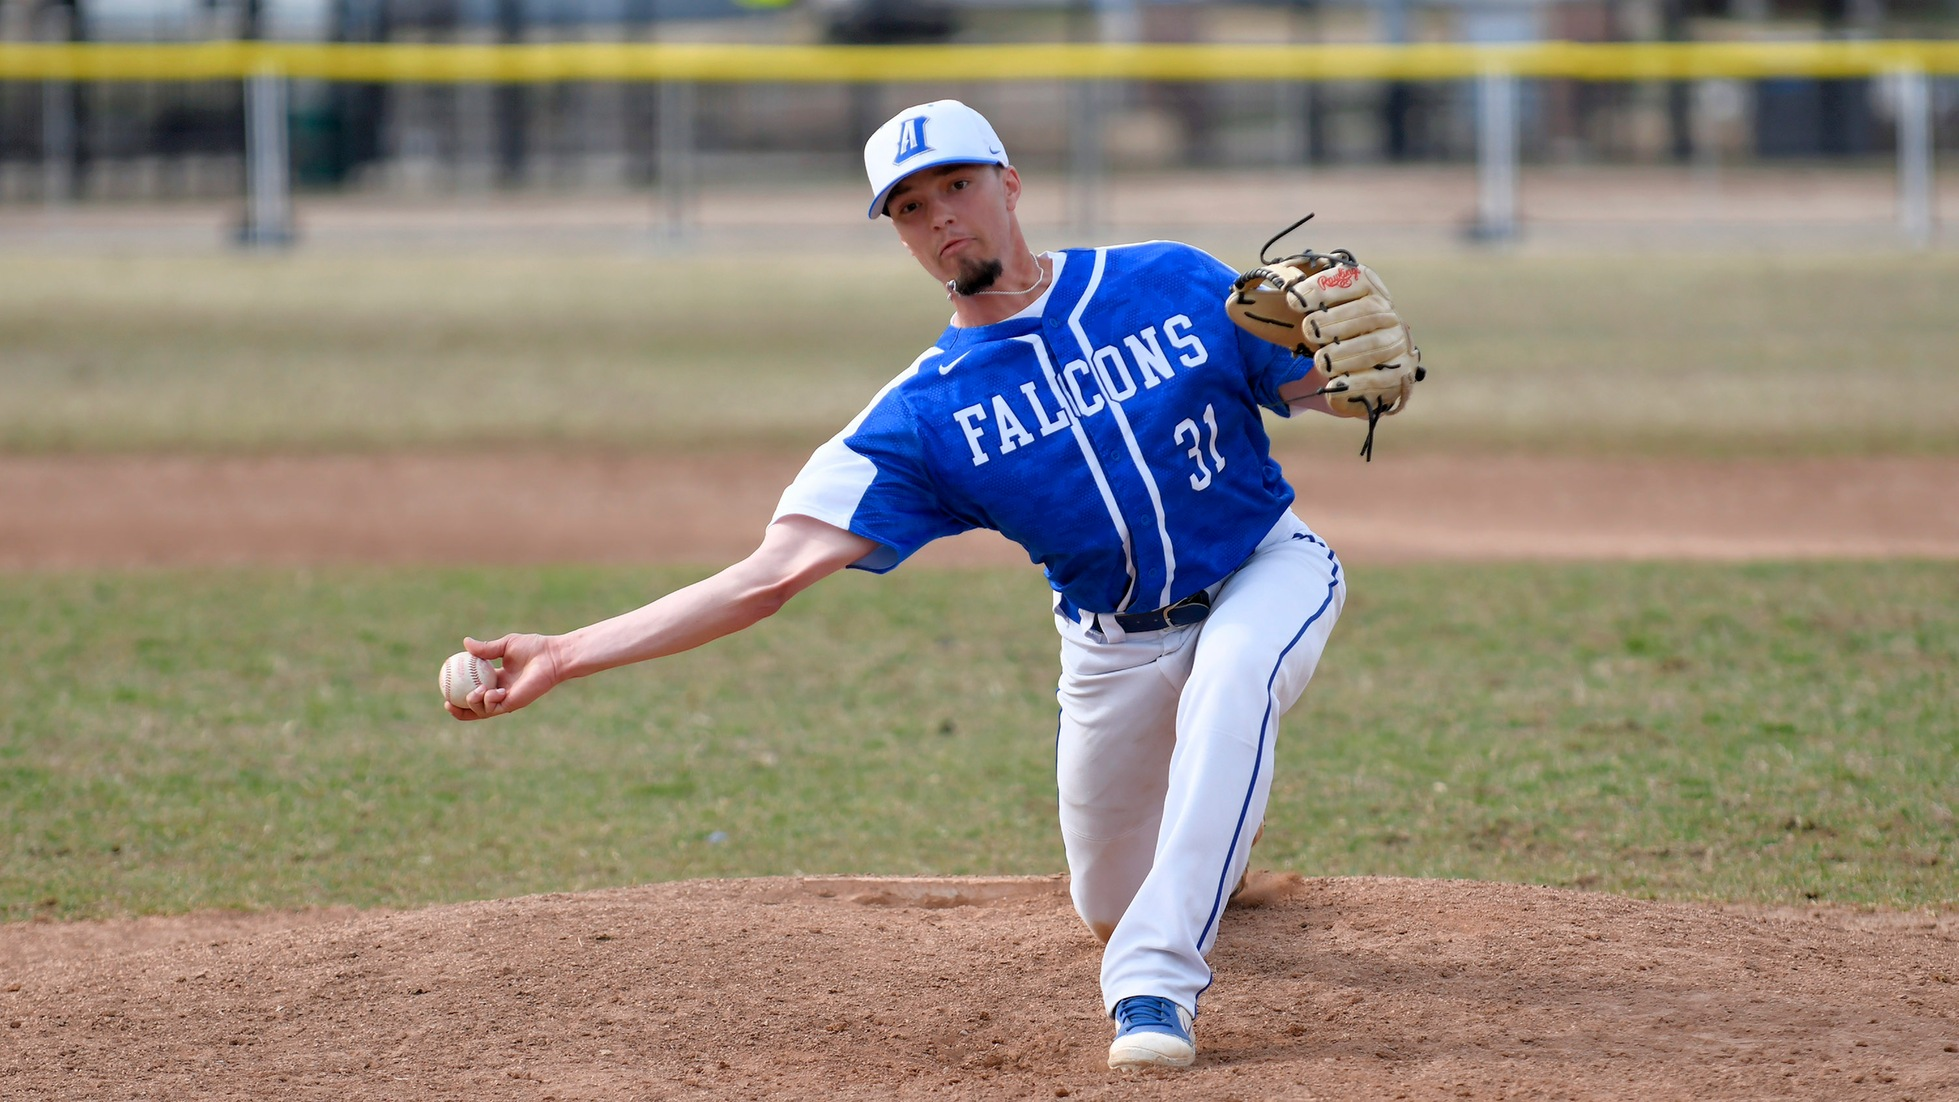 Falcons Swept by Saint Joseph's (ME) in Conference Doubleheader